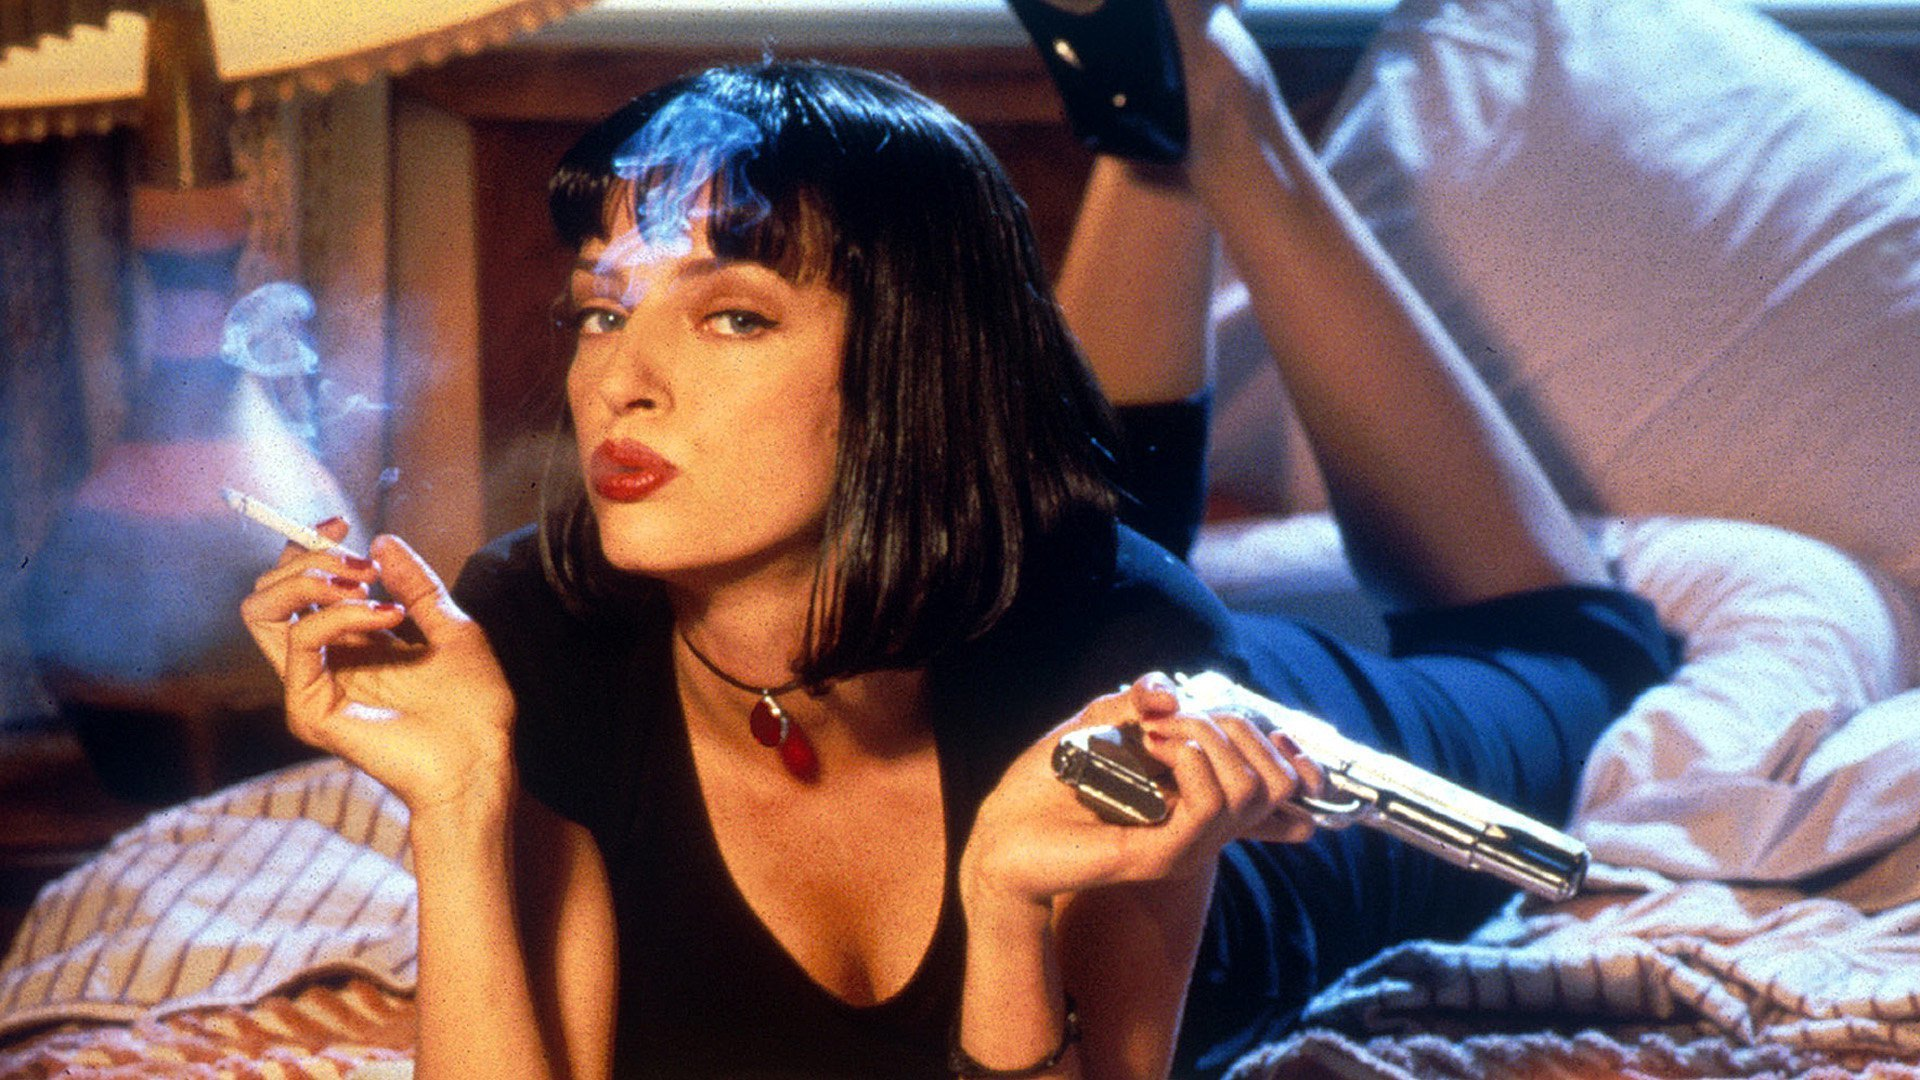 themes of pulp fiction 1 Pulp fiction ringtones for mobile phones - by relevance - free download on zedge.